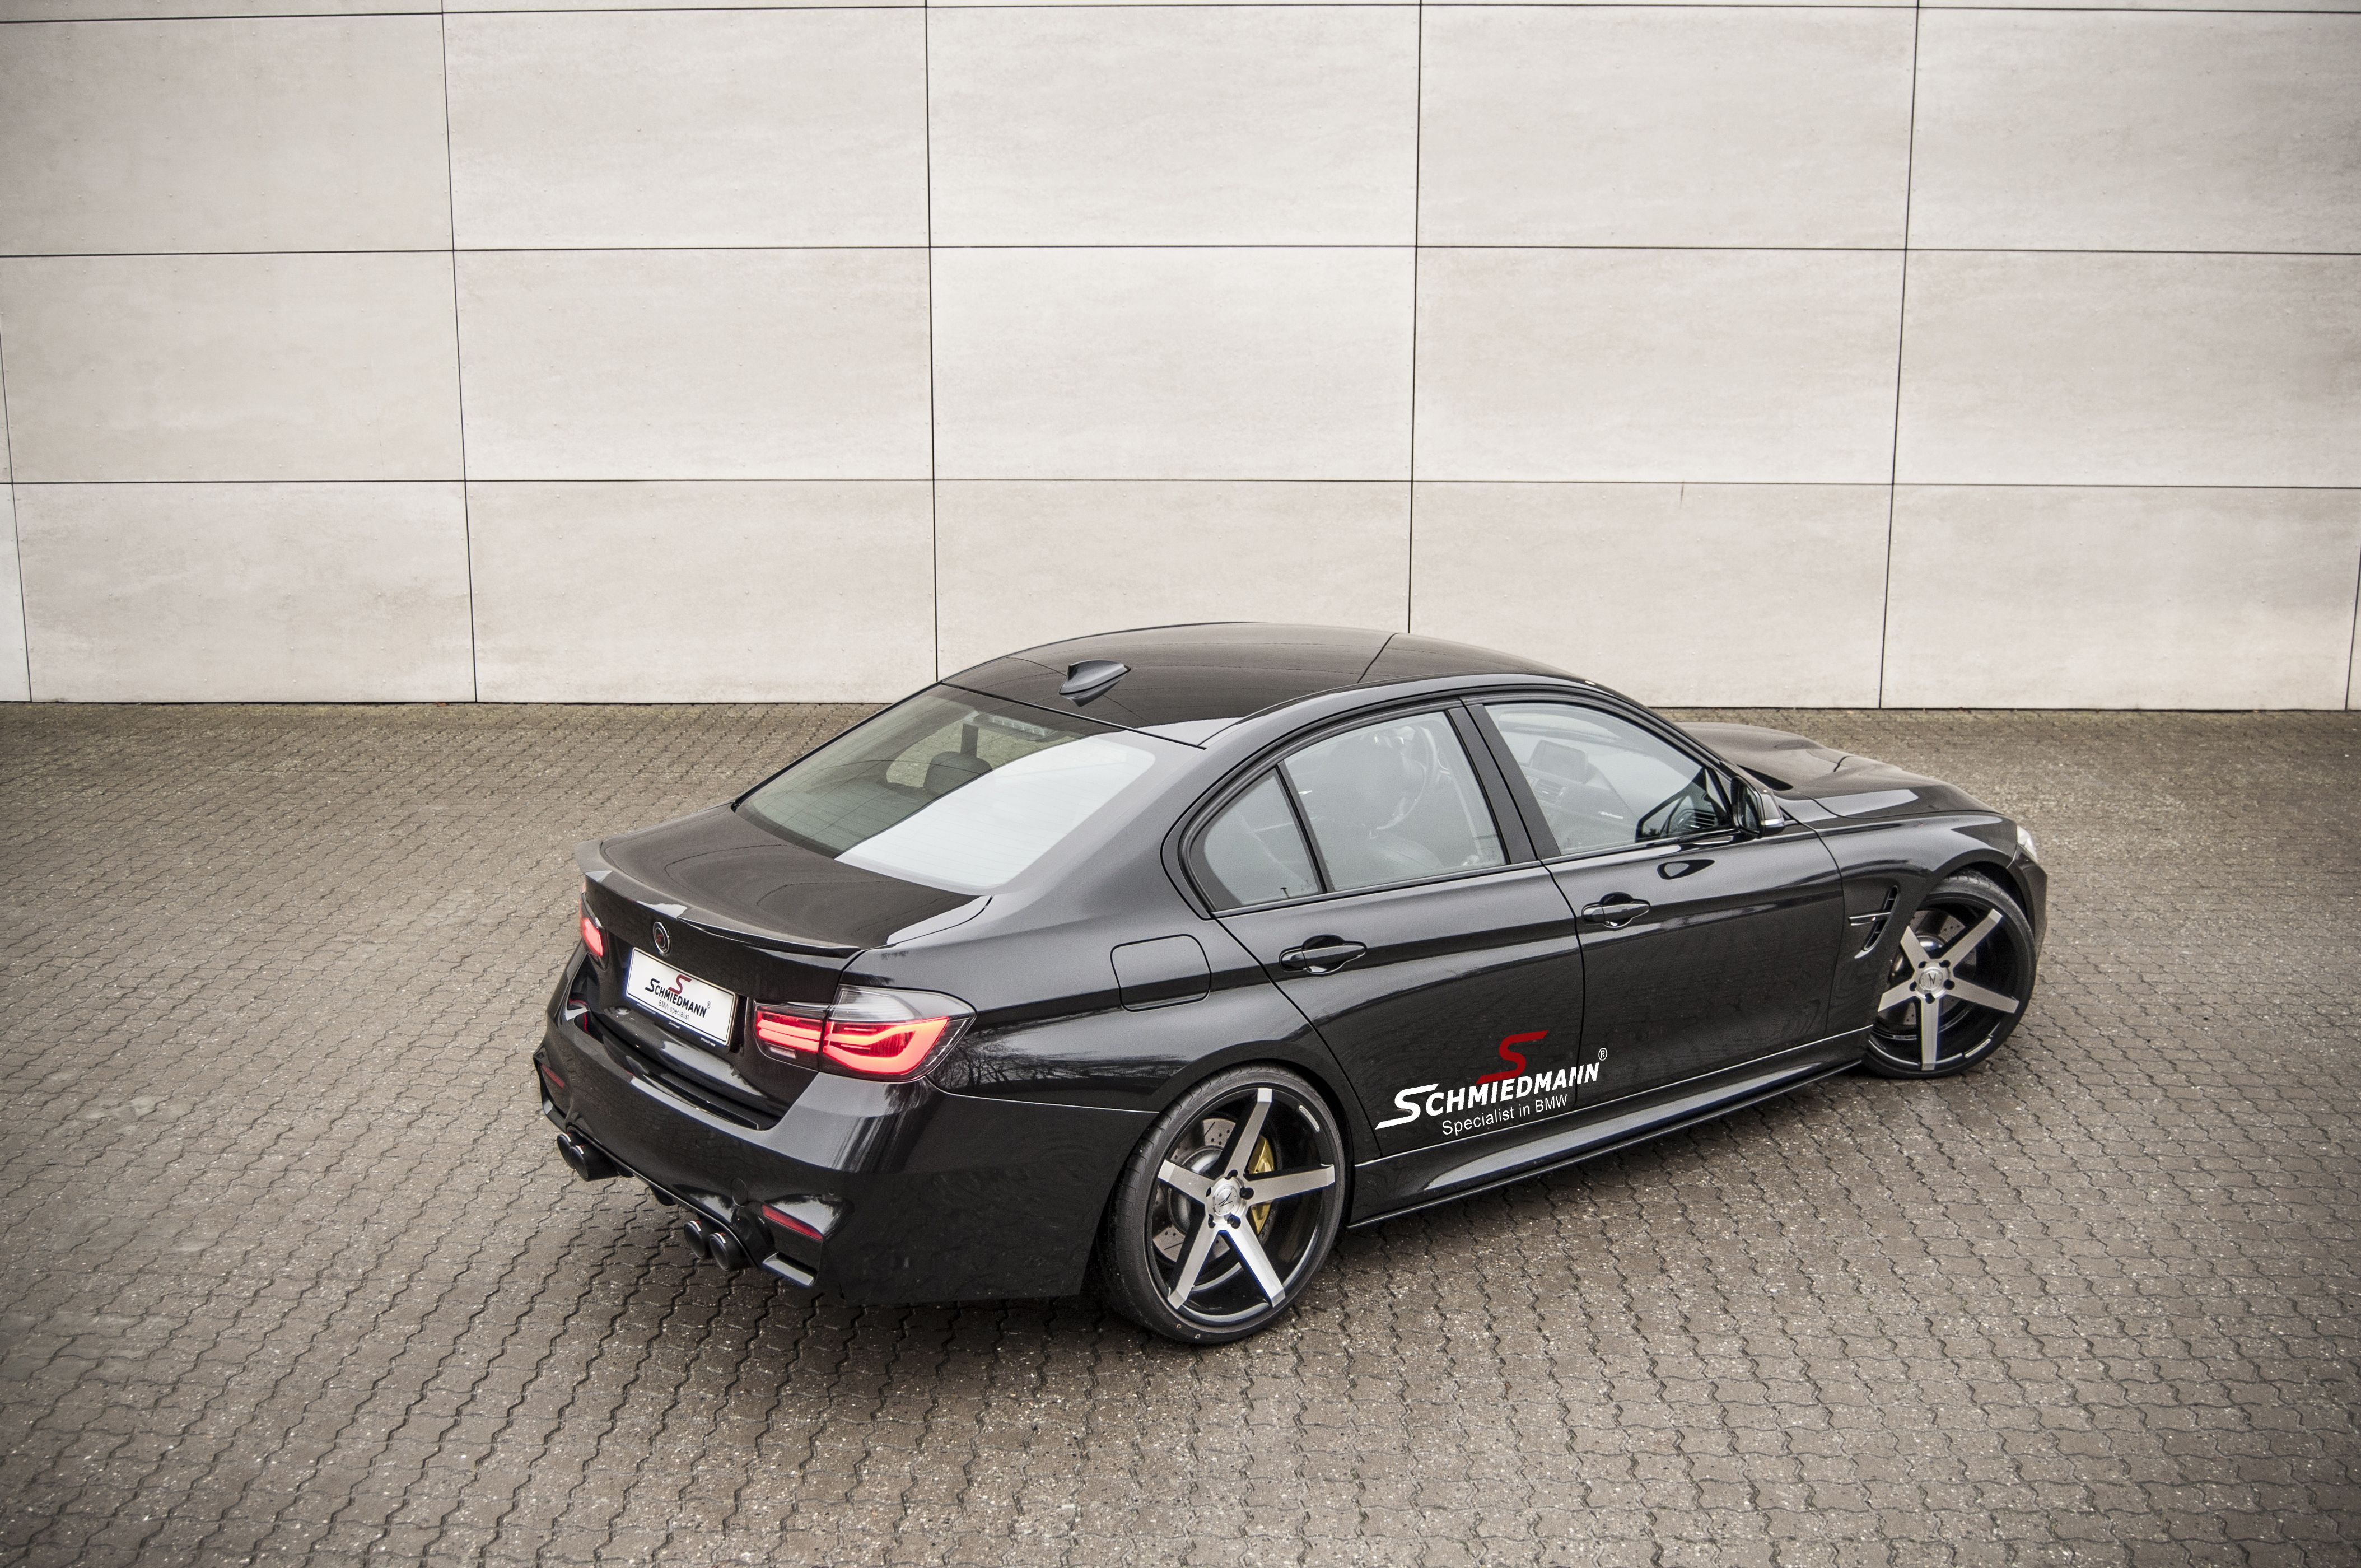 a9794d1537d1 Here is the newest addition to our list of project cars - black 3 series BMW